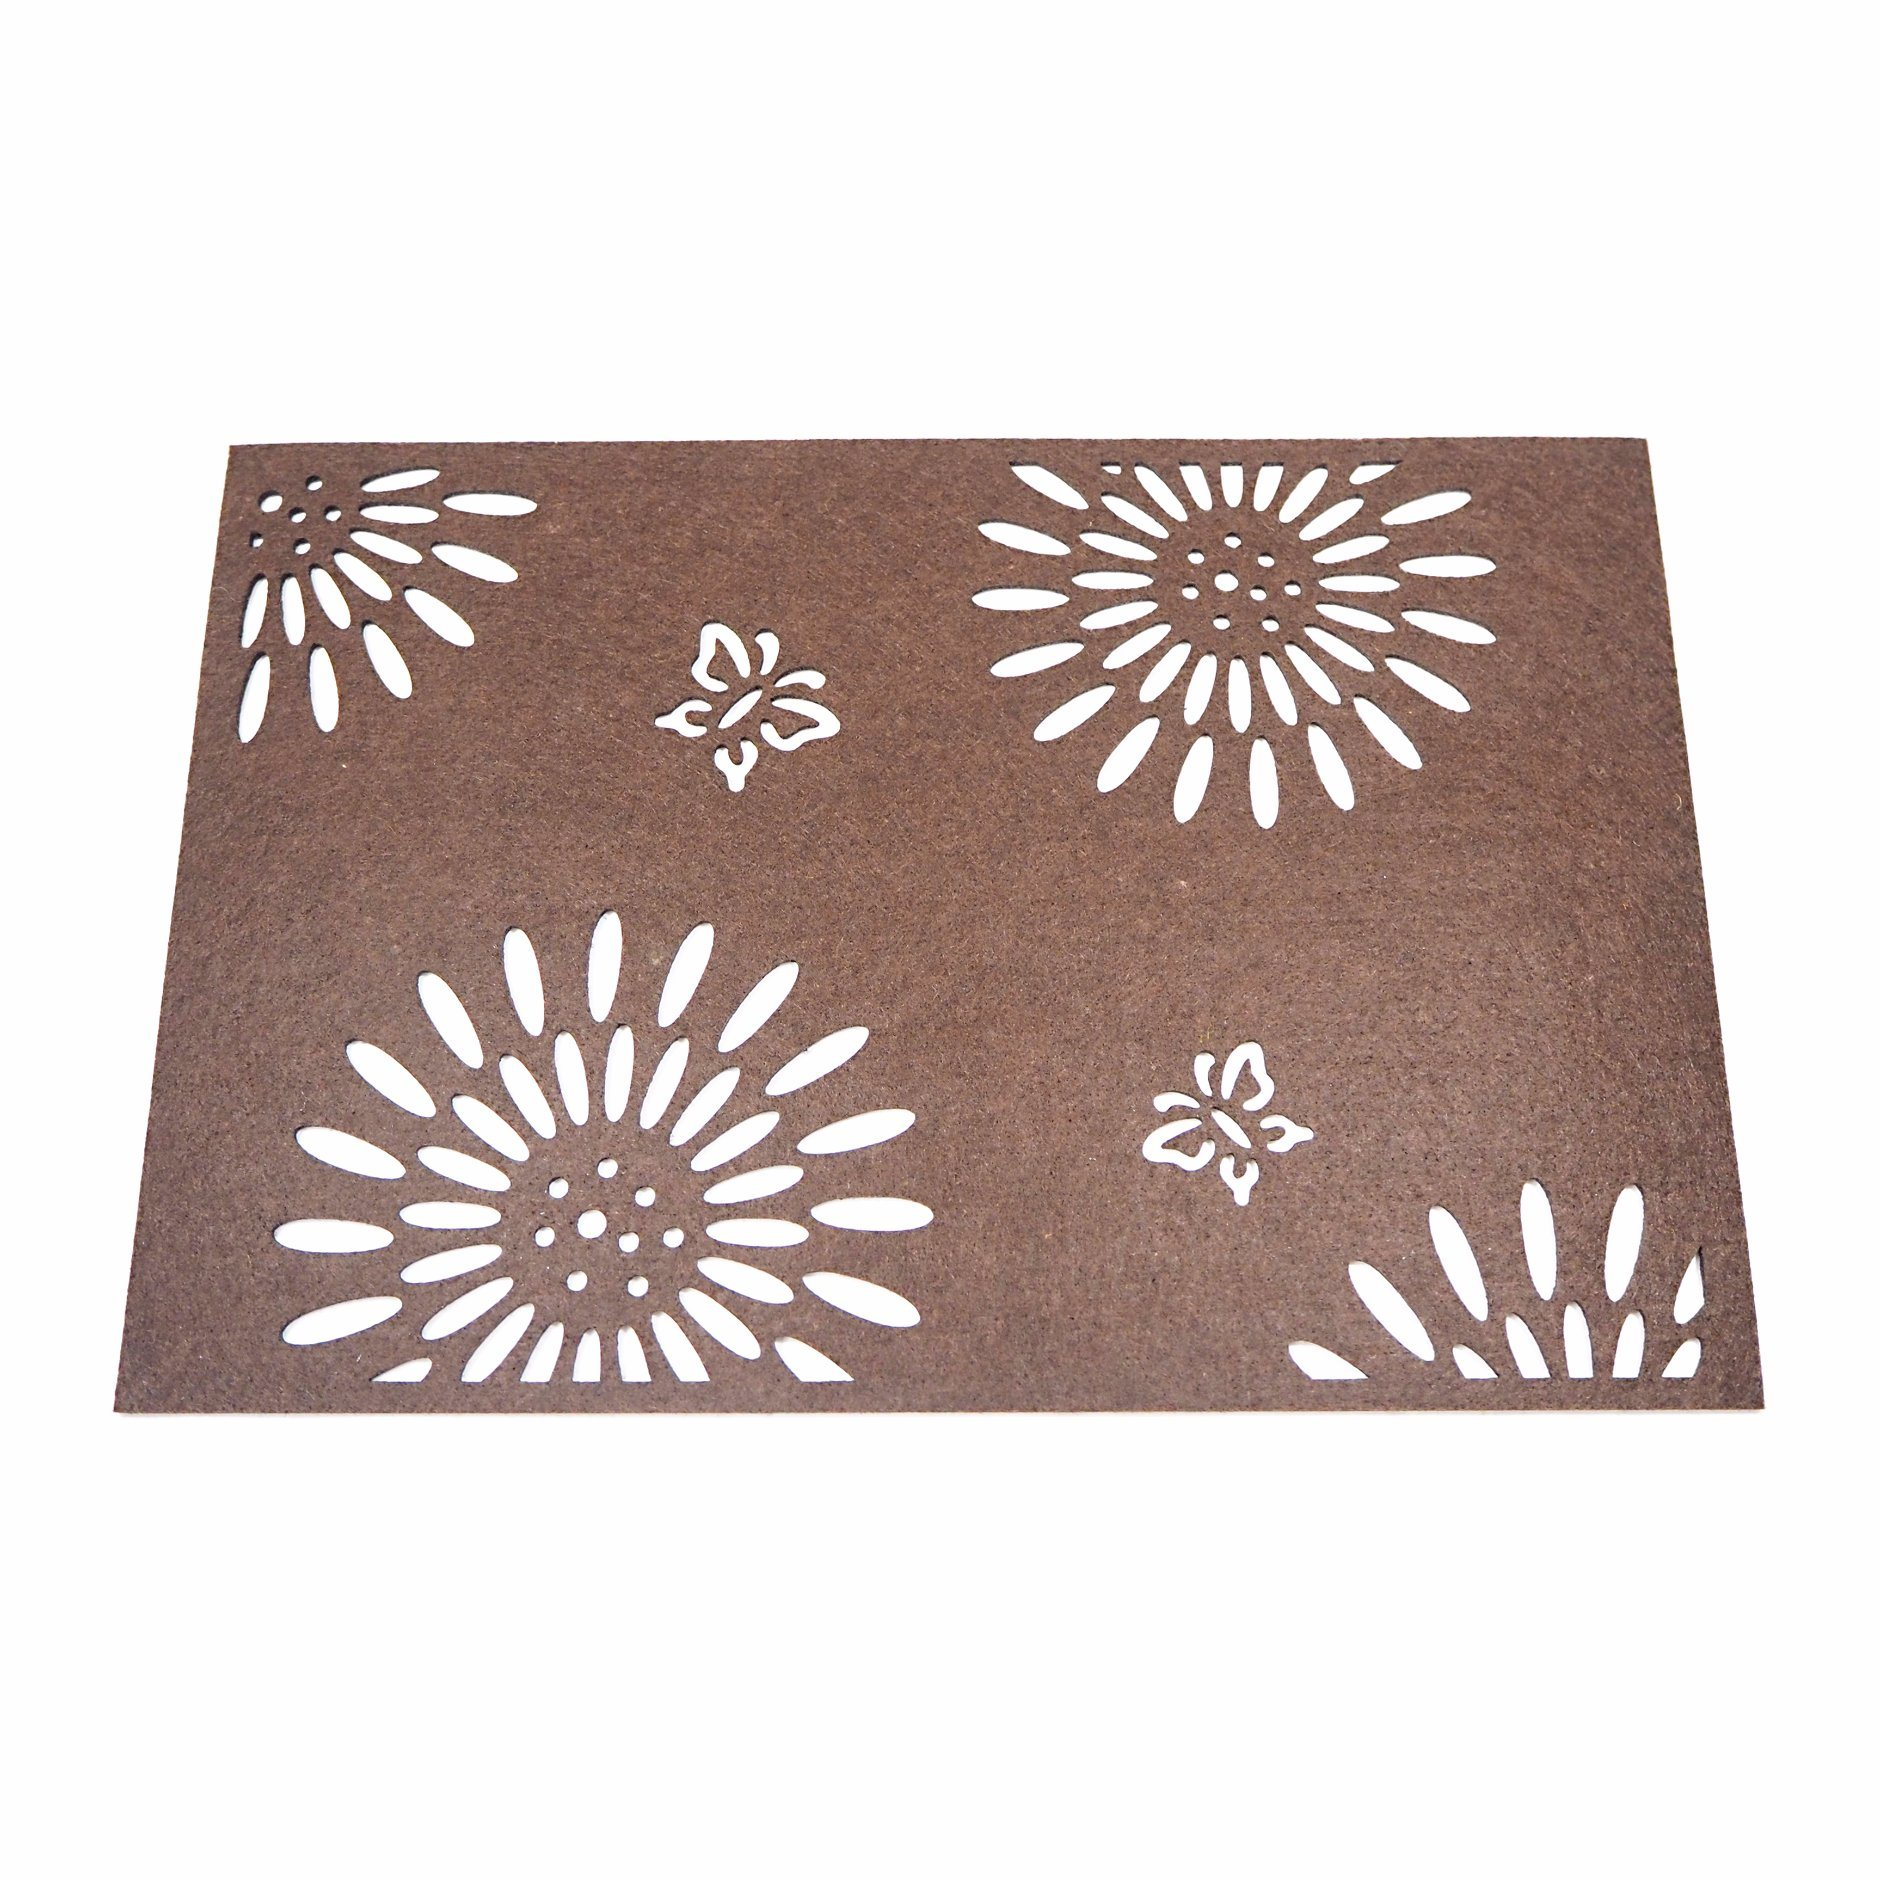 3mm & 5mm Season Polyester Placemat for Tabletop and Holiday Decorations